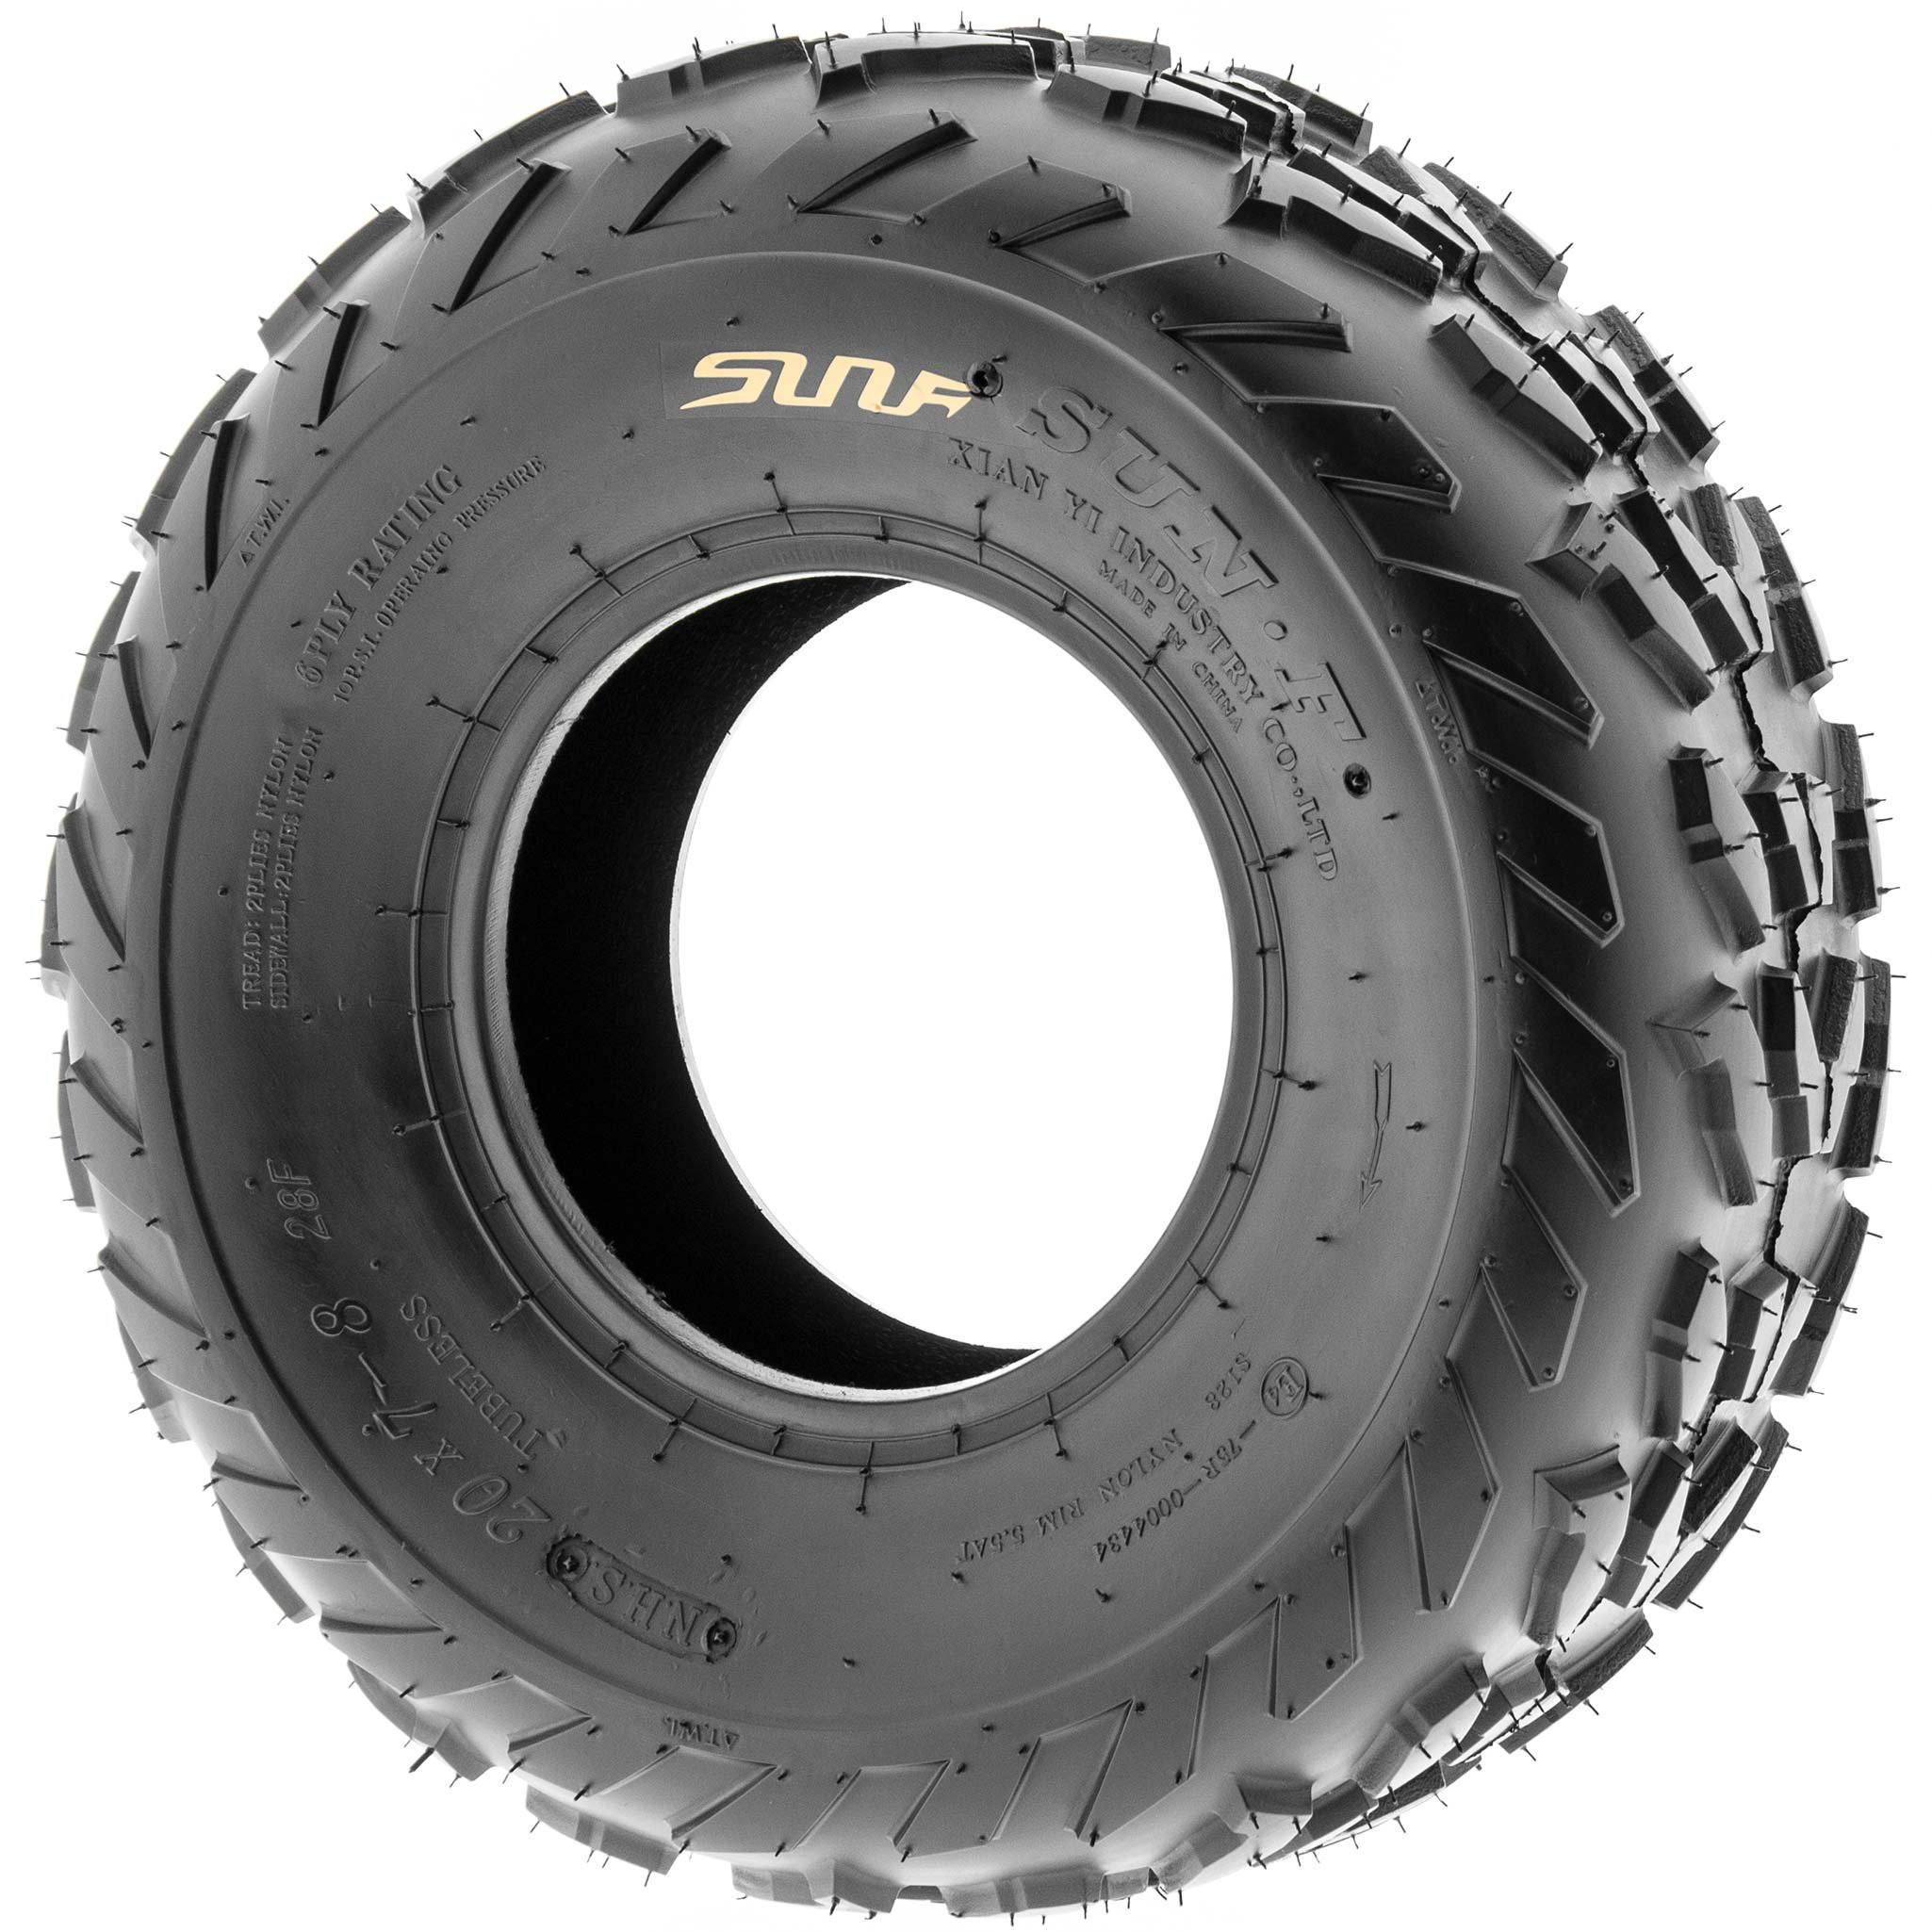 SunF 20x7-8 20x7x8 ATV UTV A/T Quad Race Replacement 6 PR Tubeless Tires A007, [Set of 2] by SunF (Image #4)